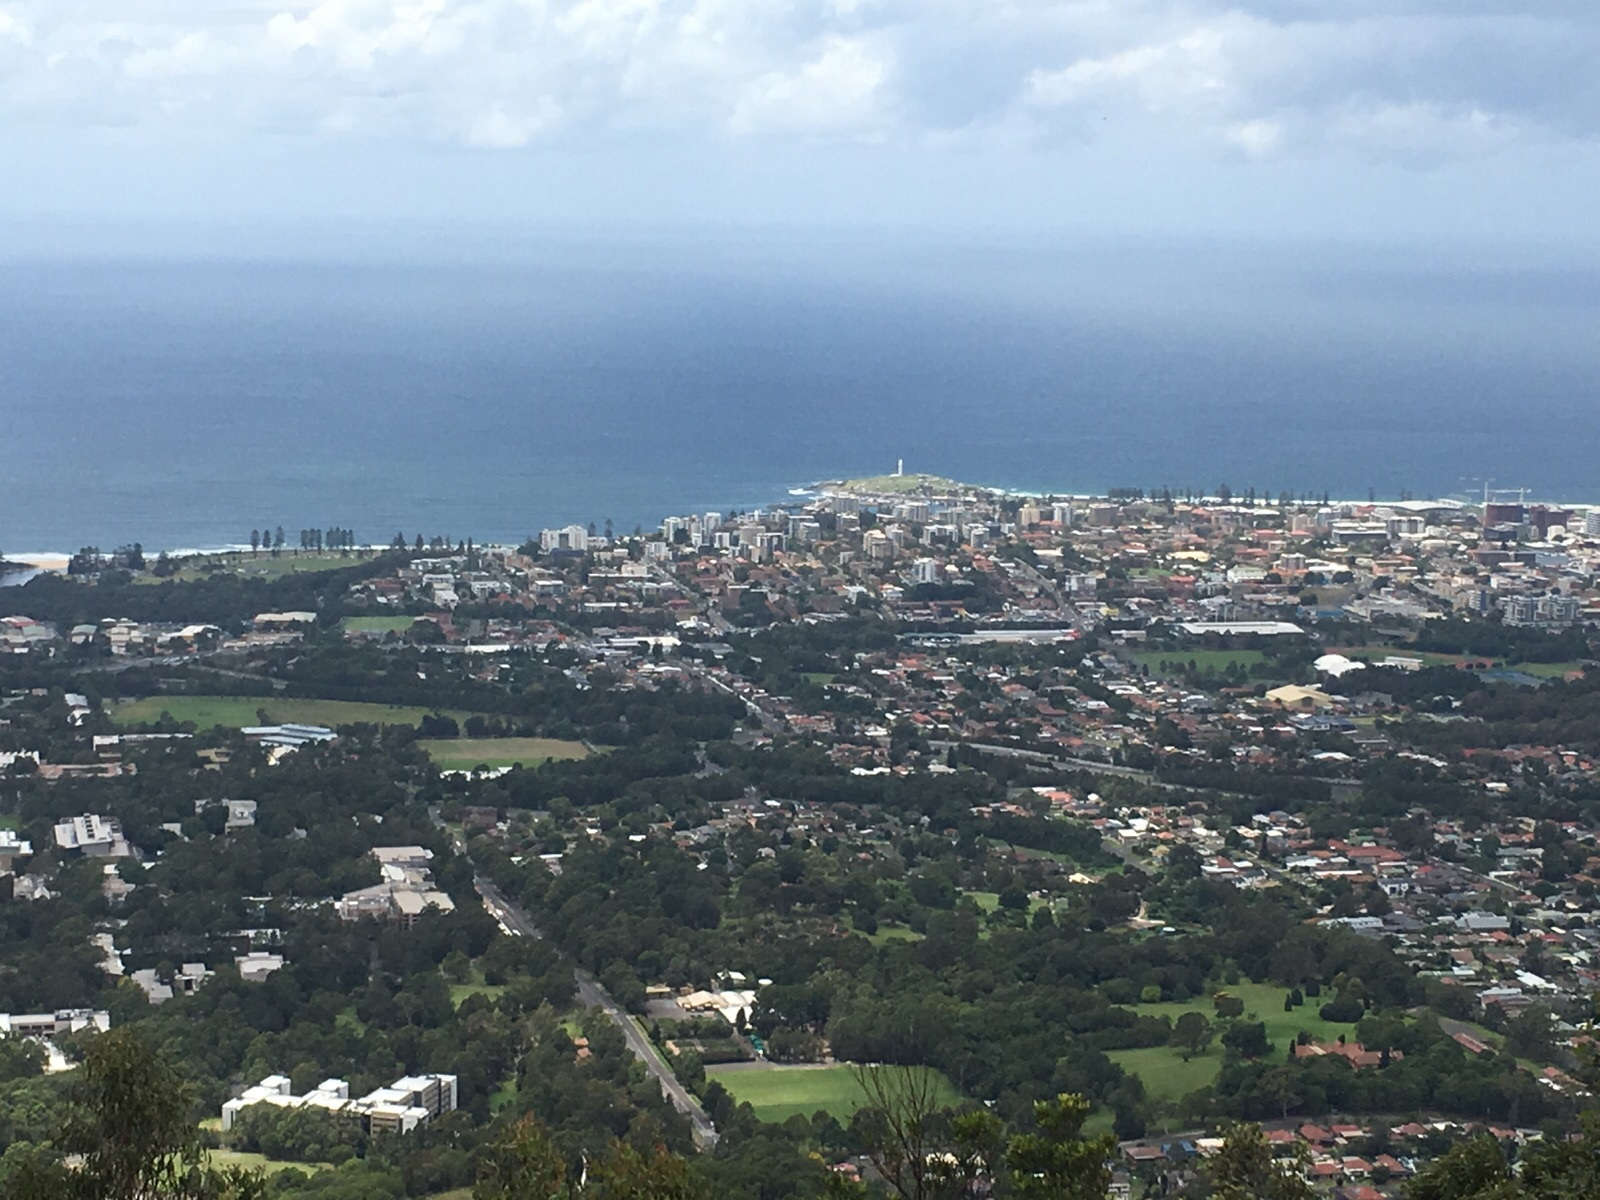 mount keira lookout - photo #21